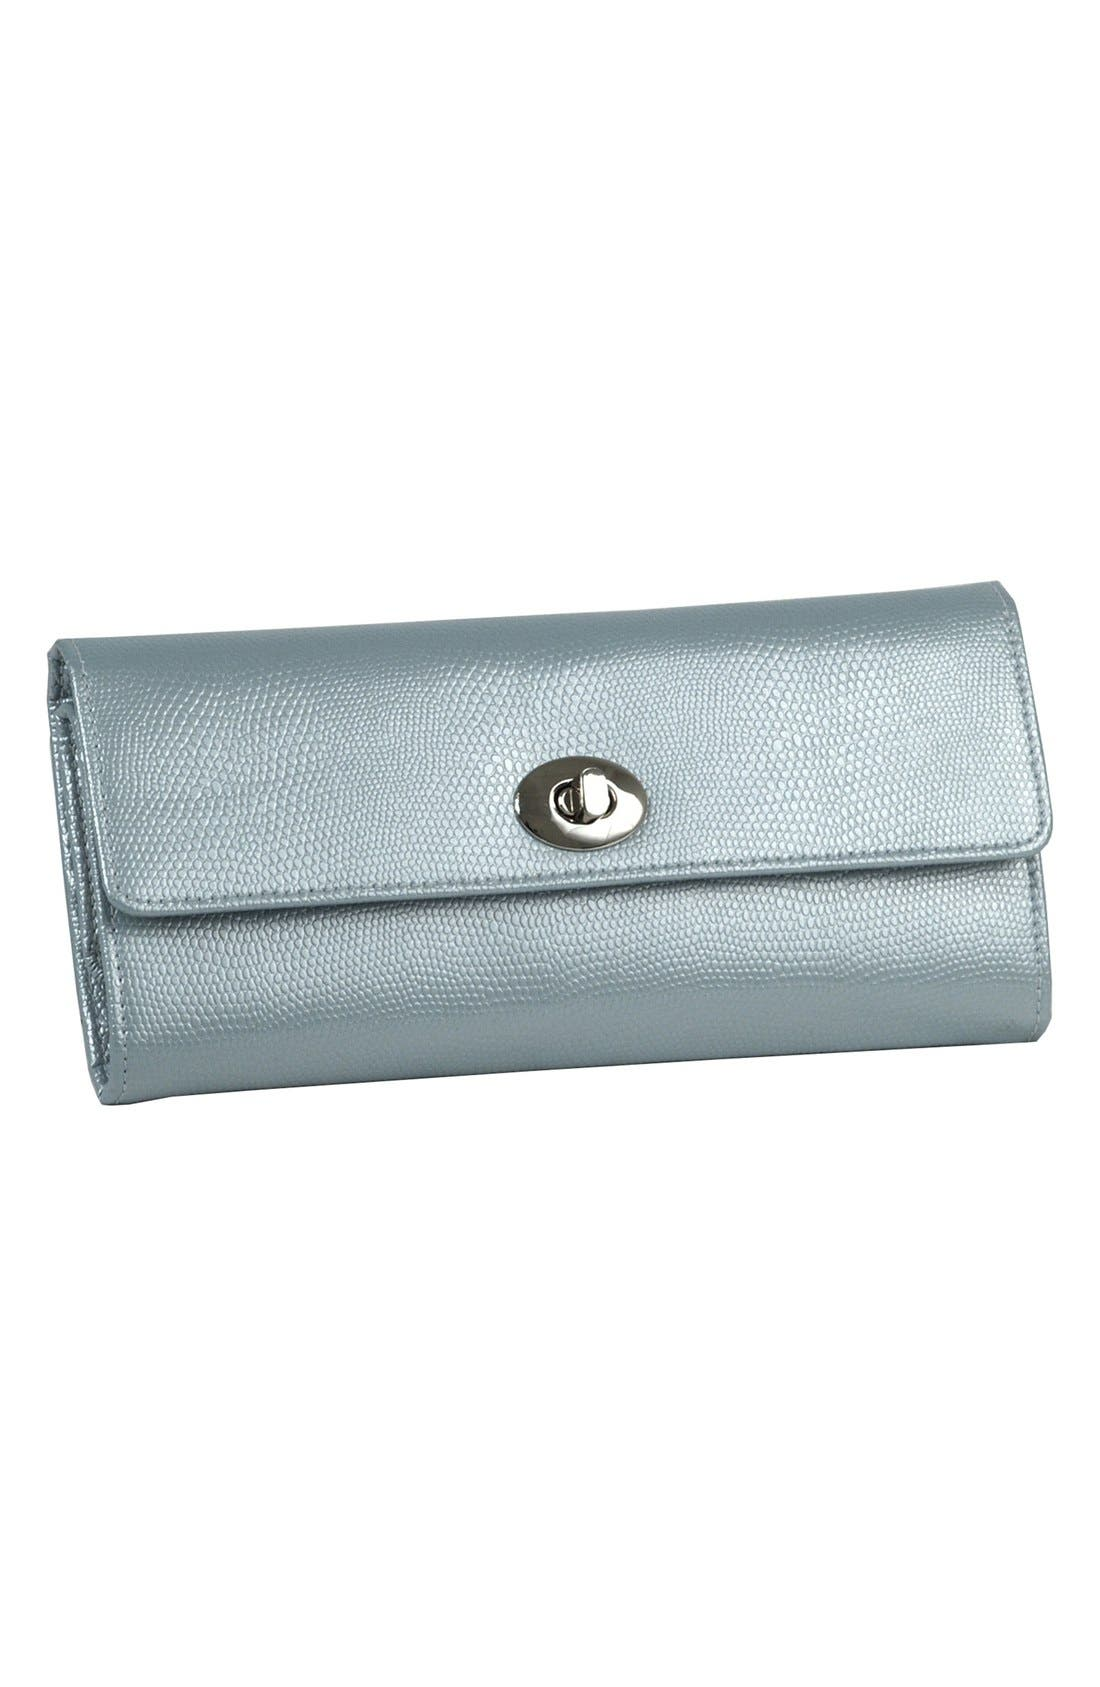 'London' Jewelry Roll,                         Main,                         color, ICE BLUE